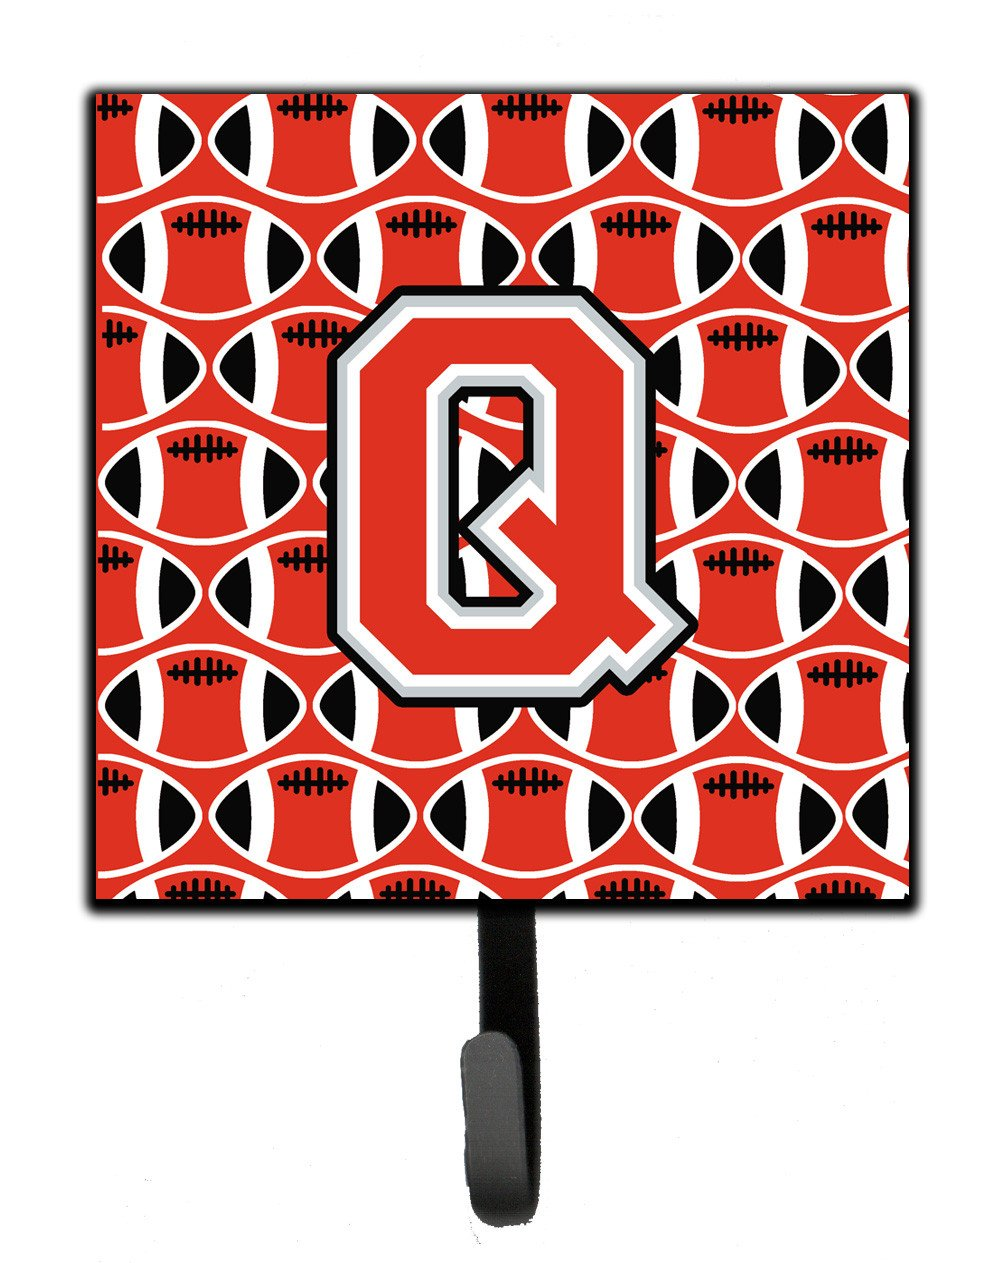 Letter Q Football Scarlet and Grey Leash or Key Holder CJ1067-QSH4 by Caroline's Treasures